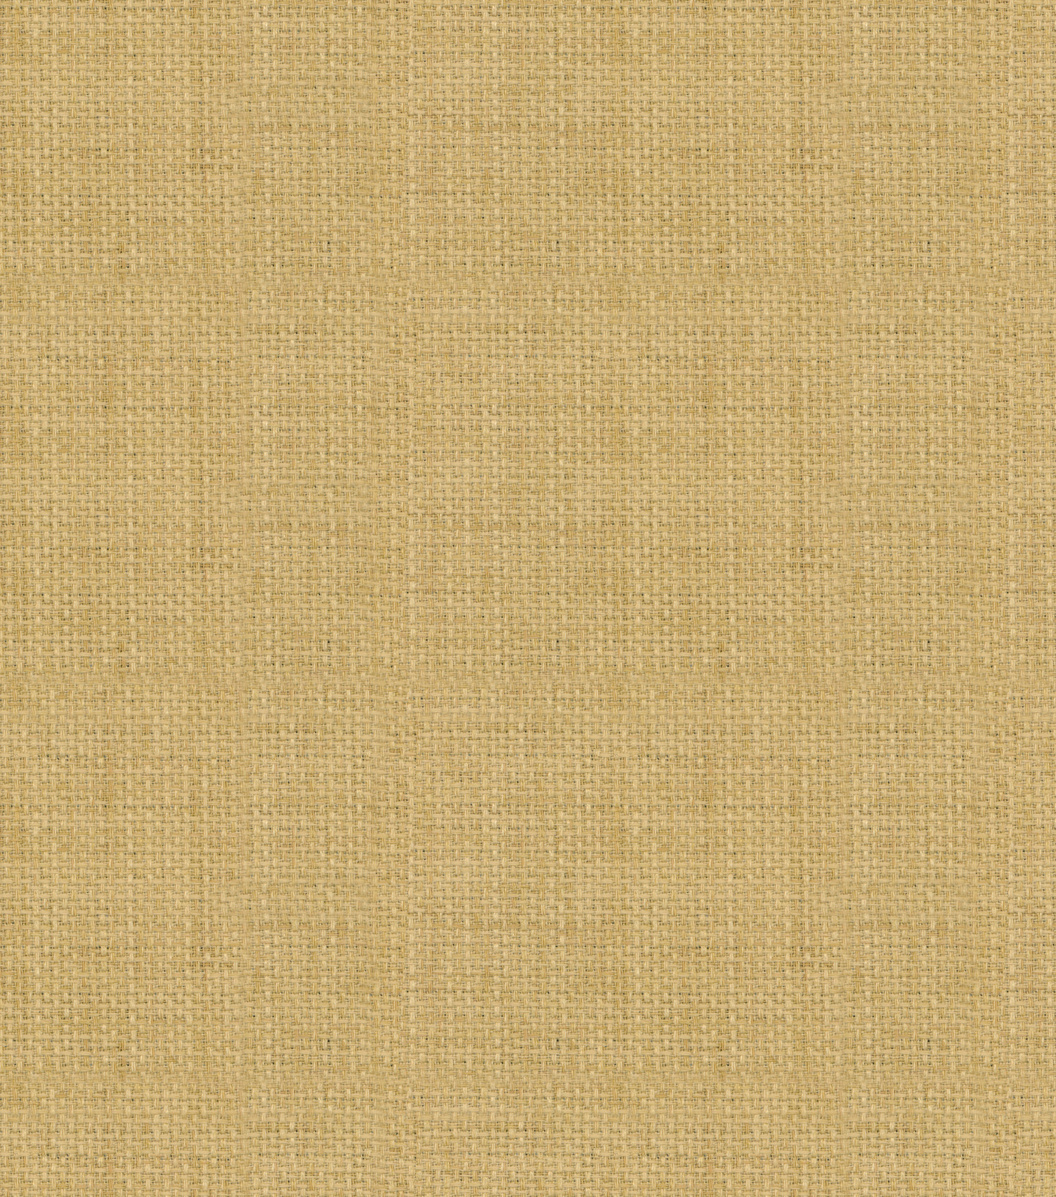 Home Decor 8\u0022x8\u0022 Fabric Swatch-Solarium Rave Birch